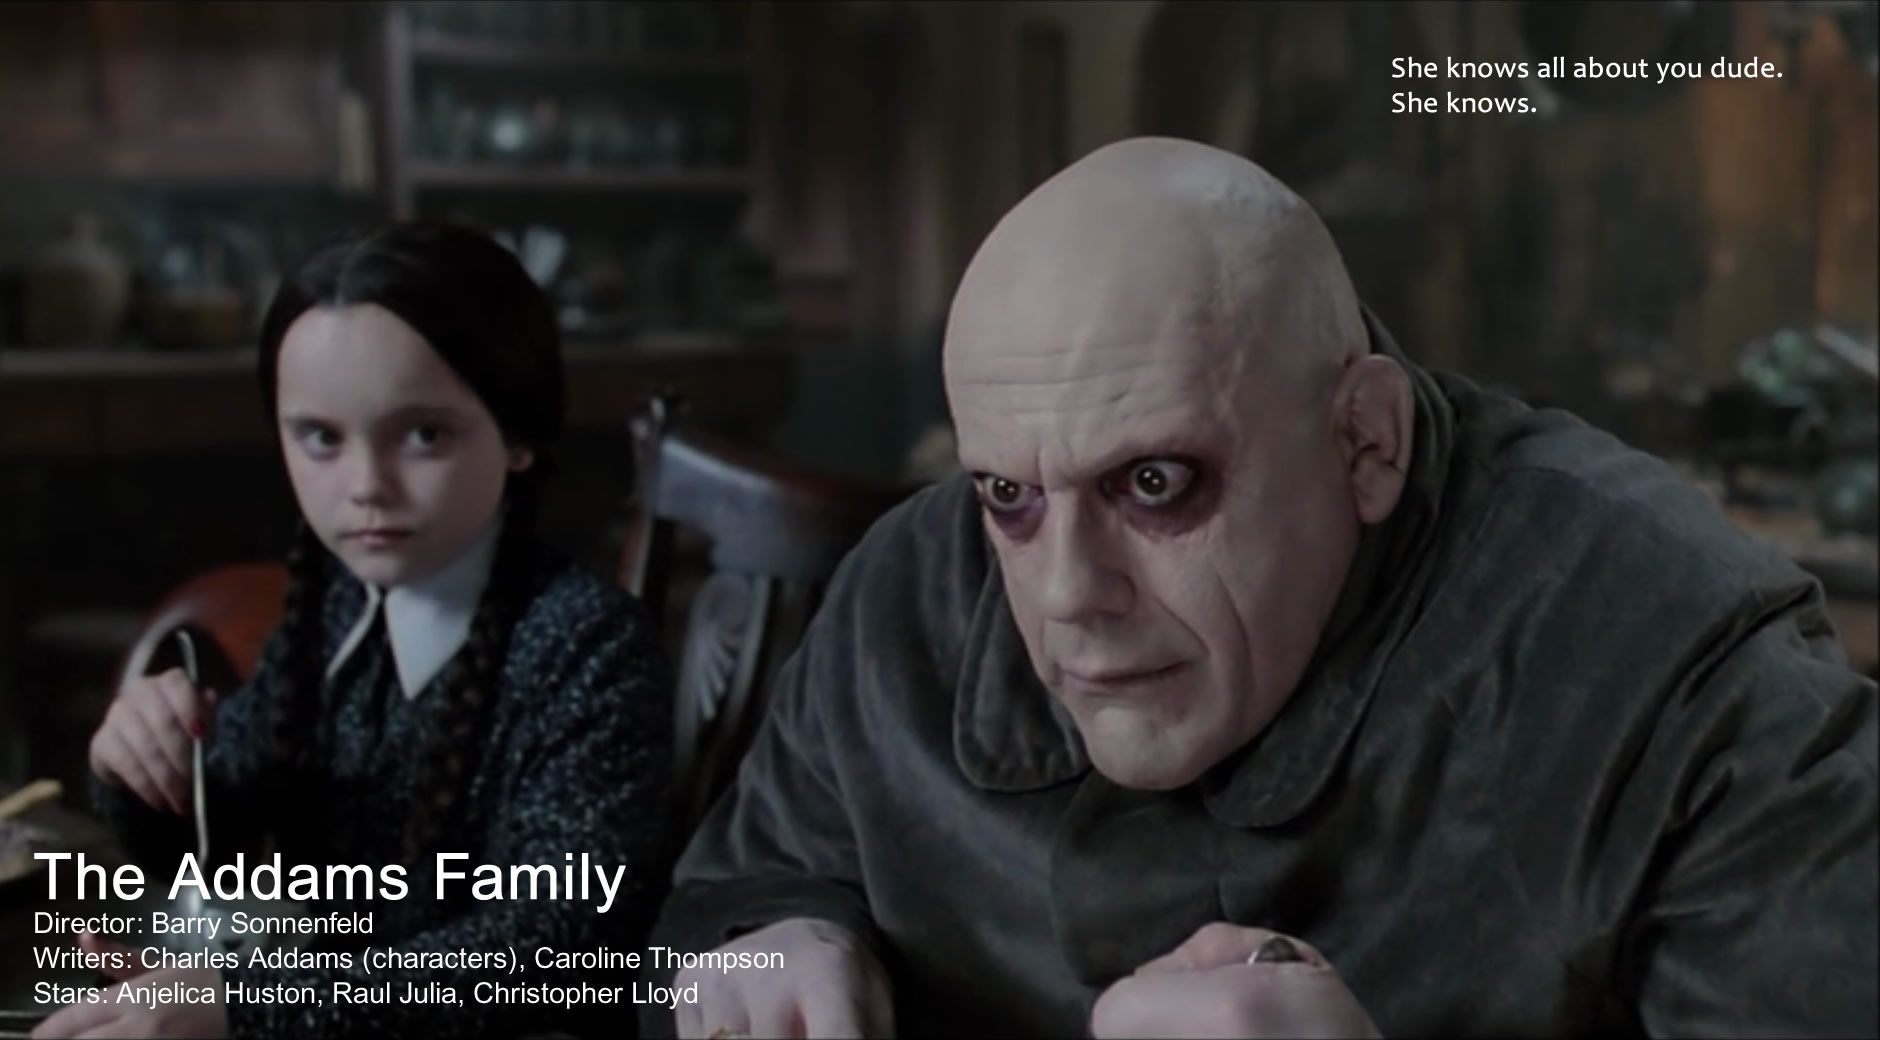 Uncle fester the addams family pinterest - Uncle Fester Is The Best The Addams Family